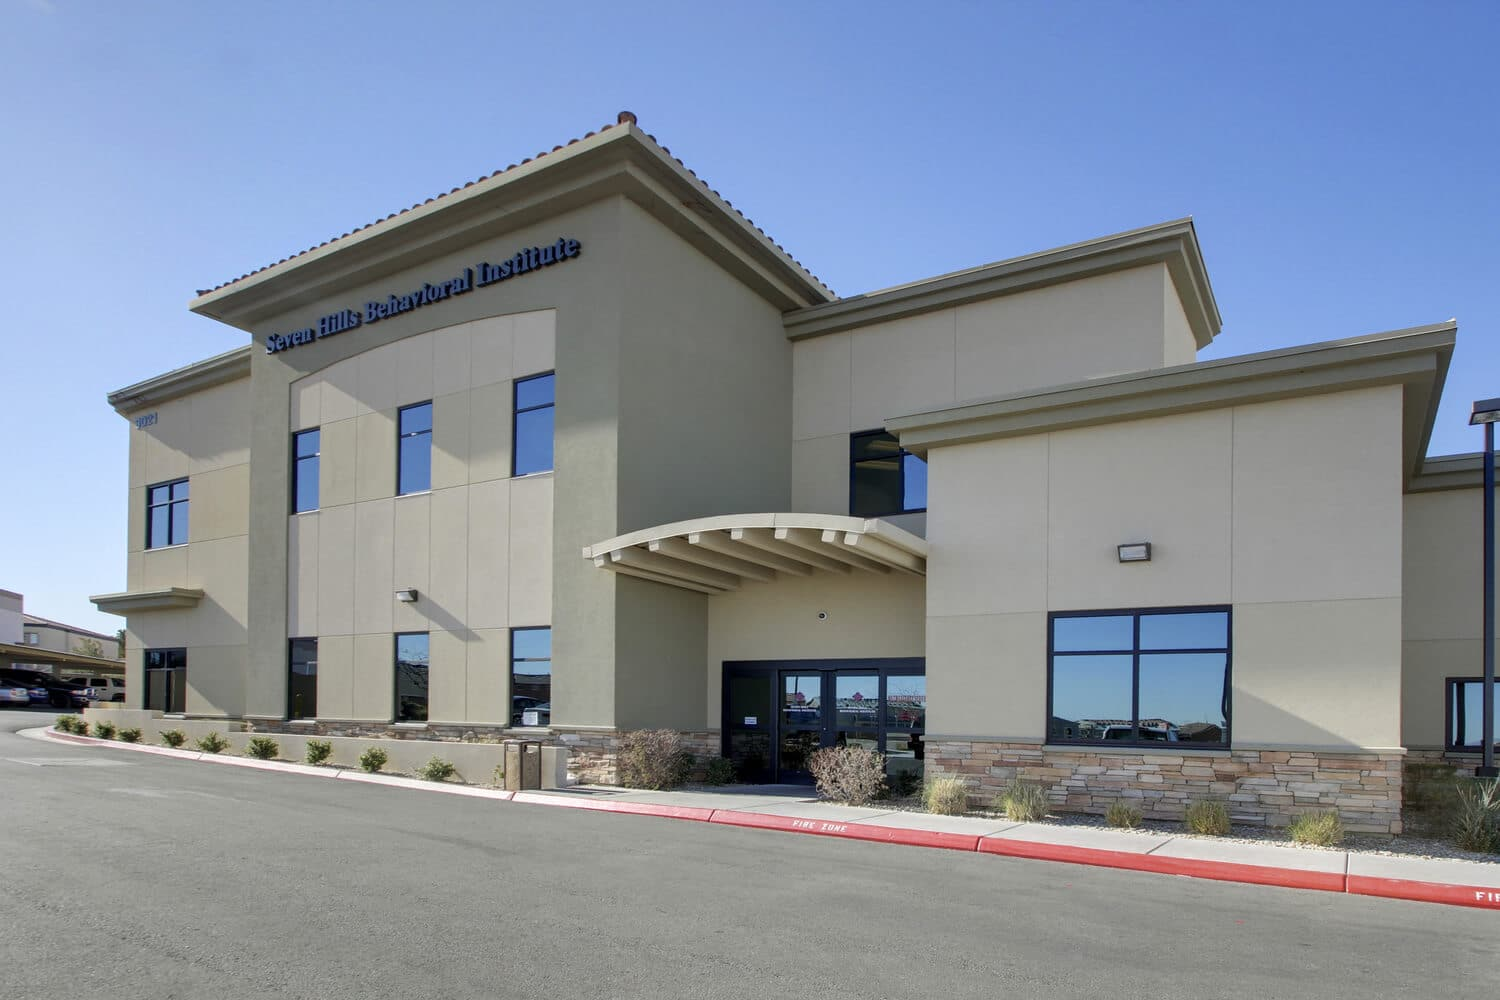 Seven Hills Behavioral Health Hospital